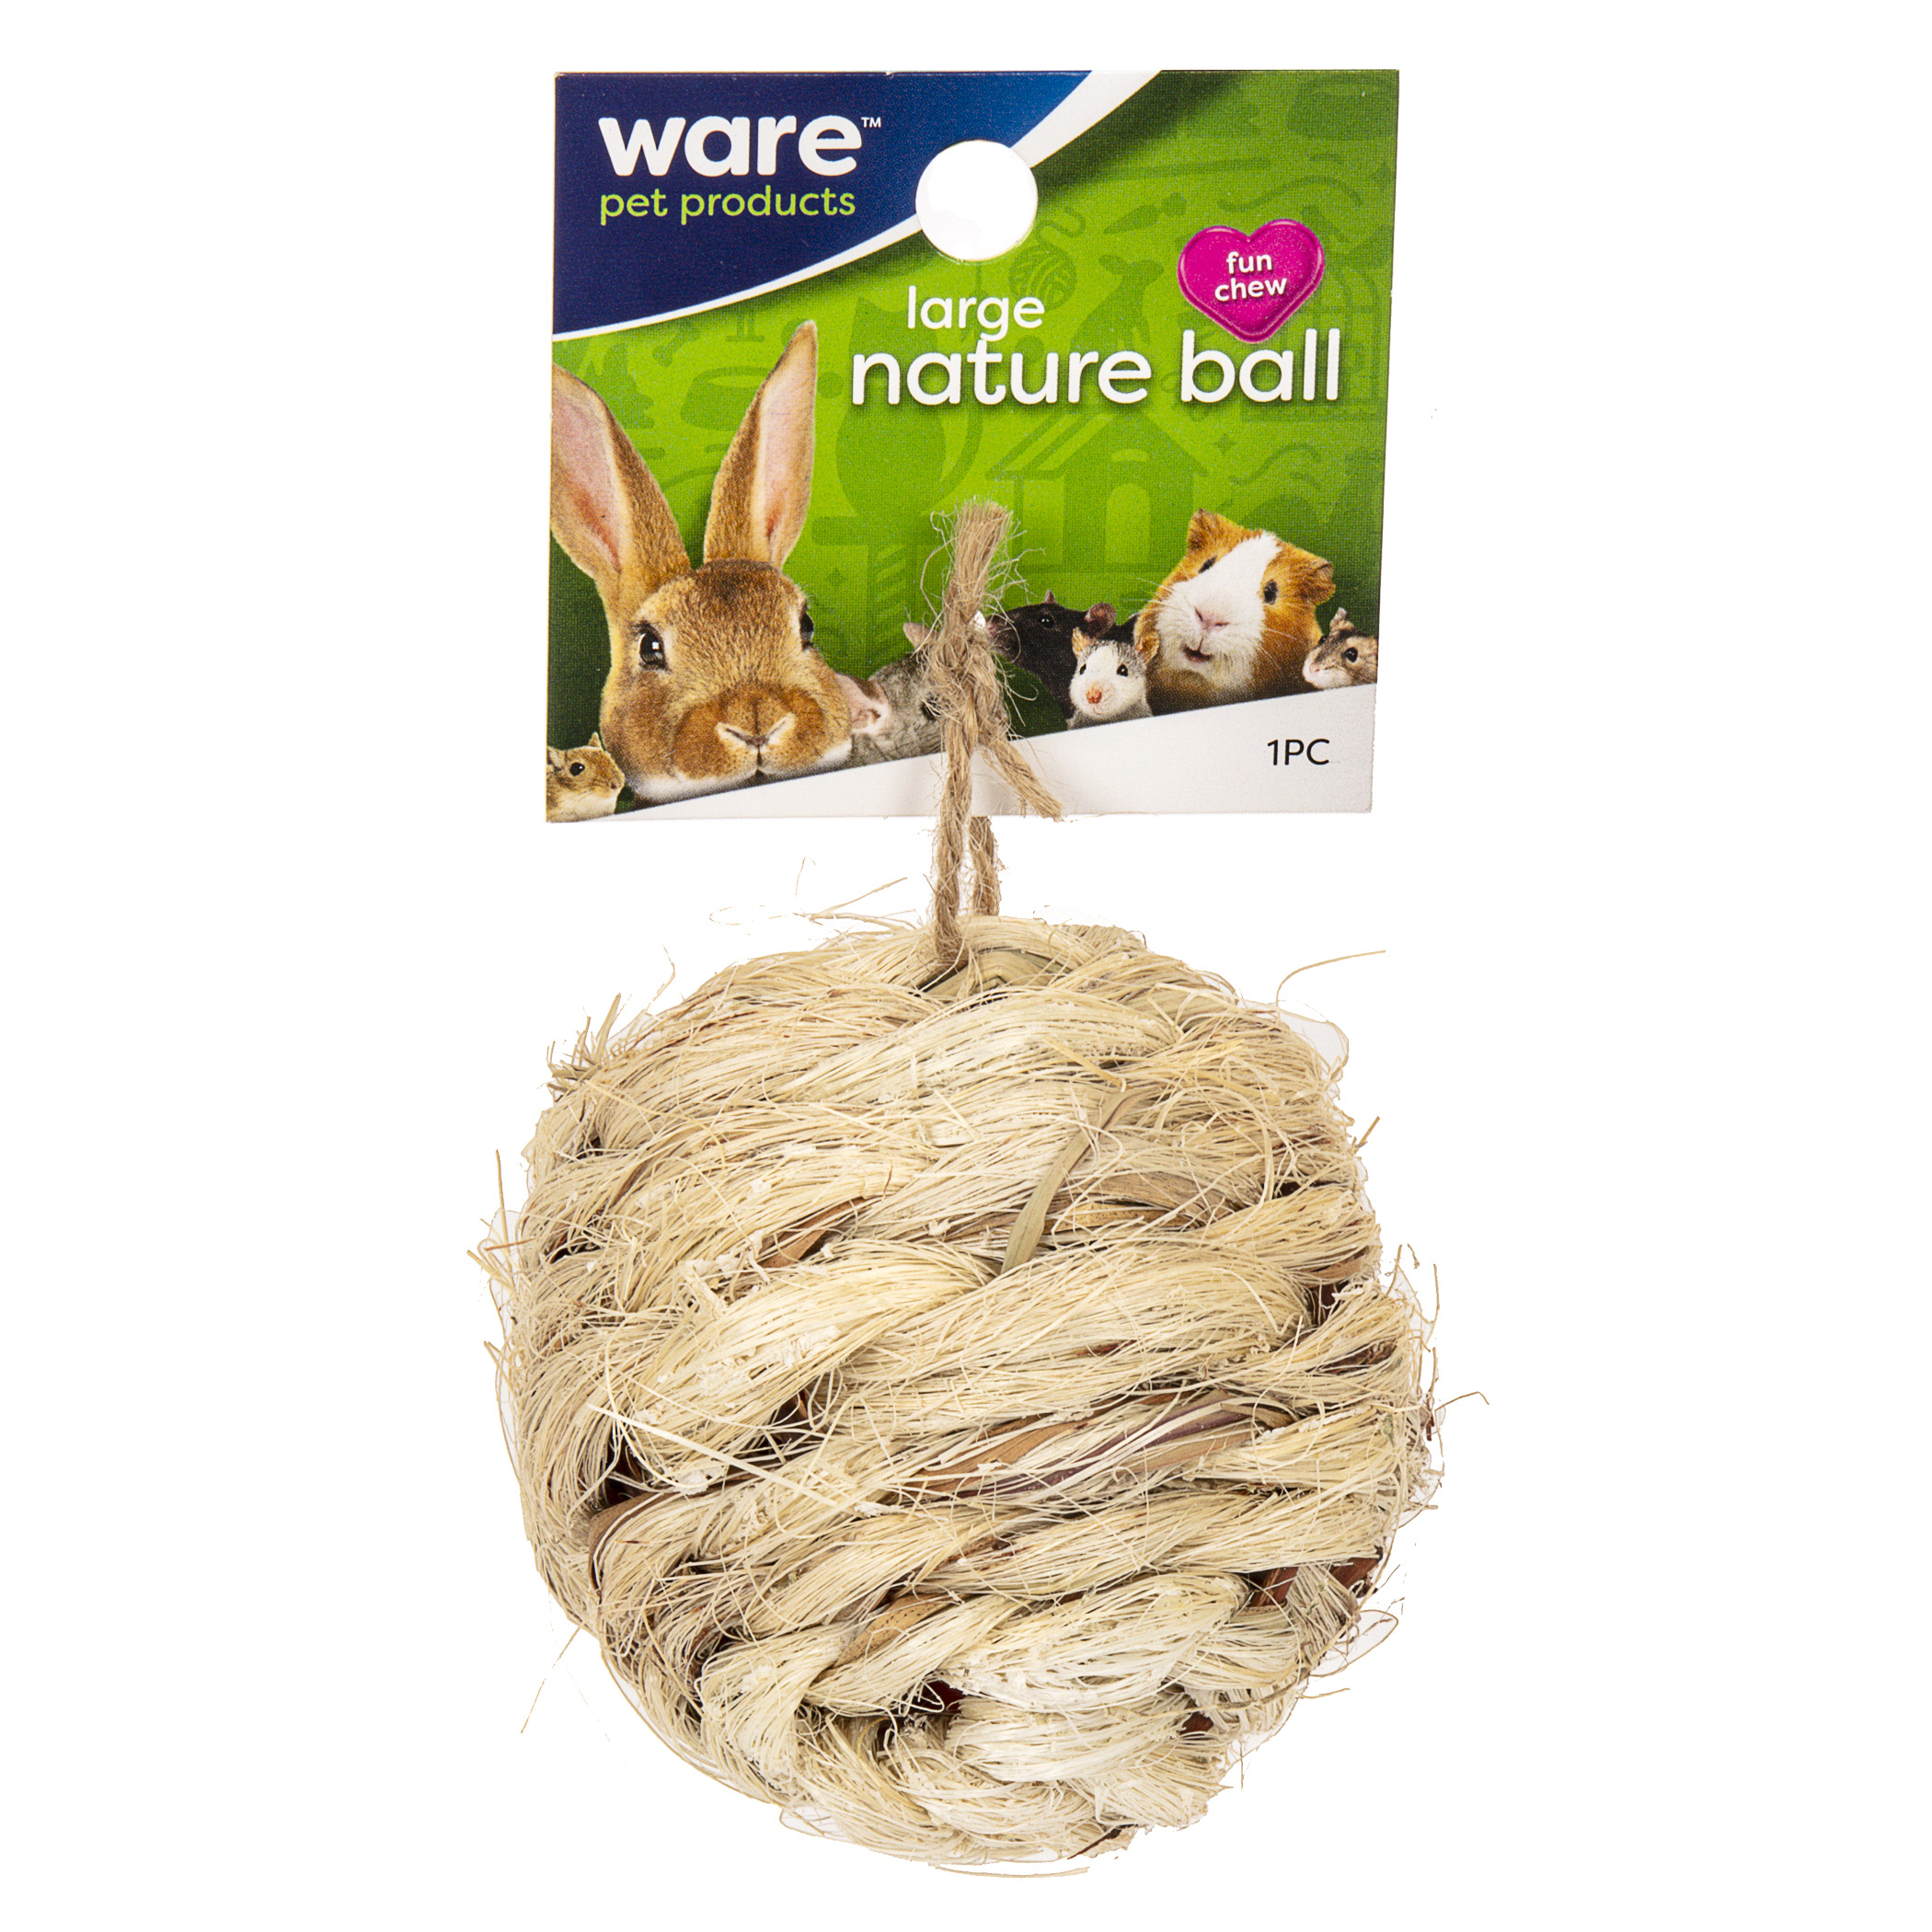 Ware Nature Ball, Small Pet Toy Image